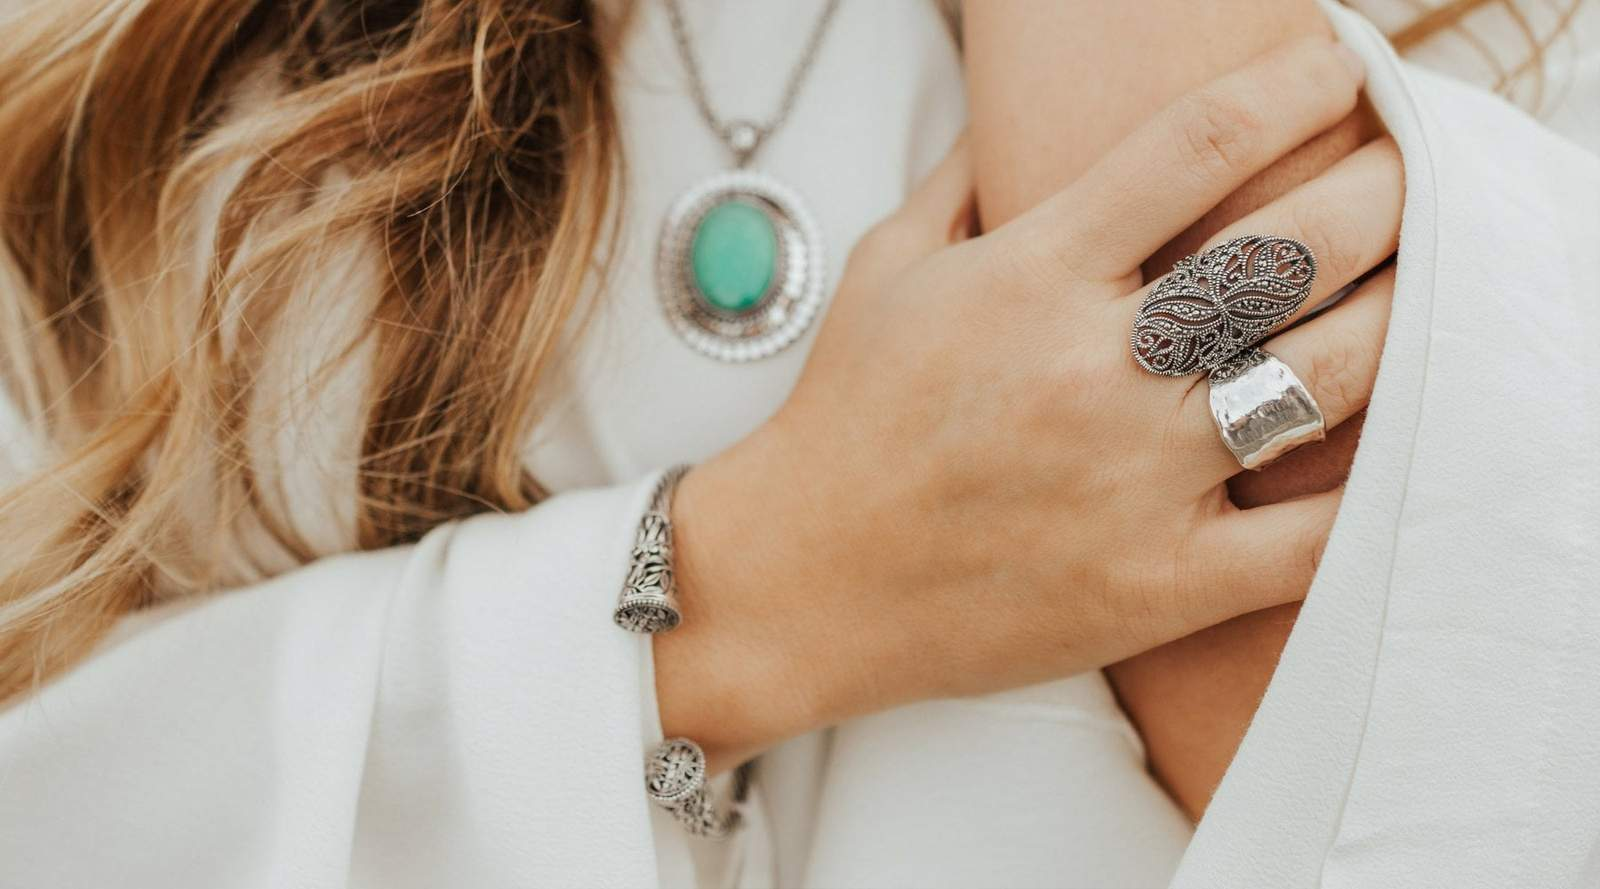 Jewelry Care Tips – Keep Your Jewelry Look Shiny!